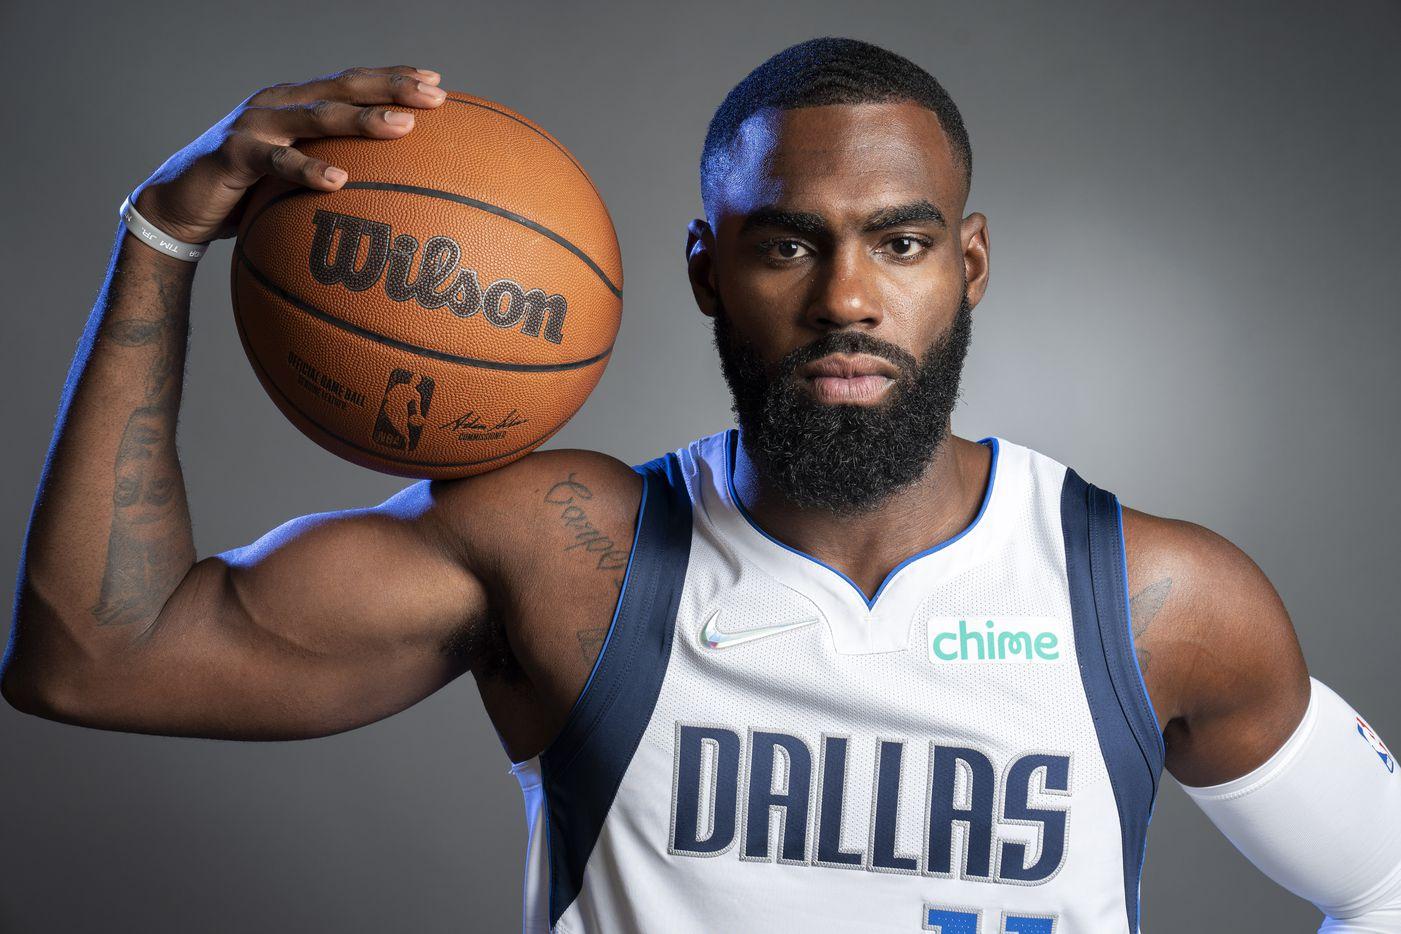 Dallas Mavericks guard Tim Hardaway Jr. (11) poses for a portrait during the Dallas Mavericks media day, Monday, September 27, 2021 at American Airlines Center in Dallas. (Jeffrey McWhorter/Special Contributor)